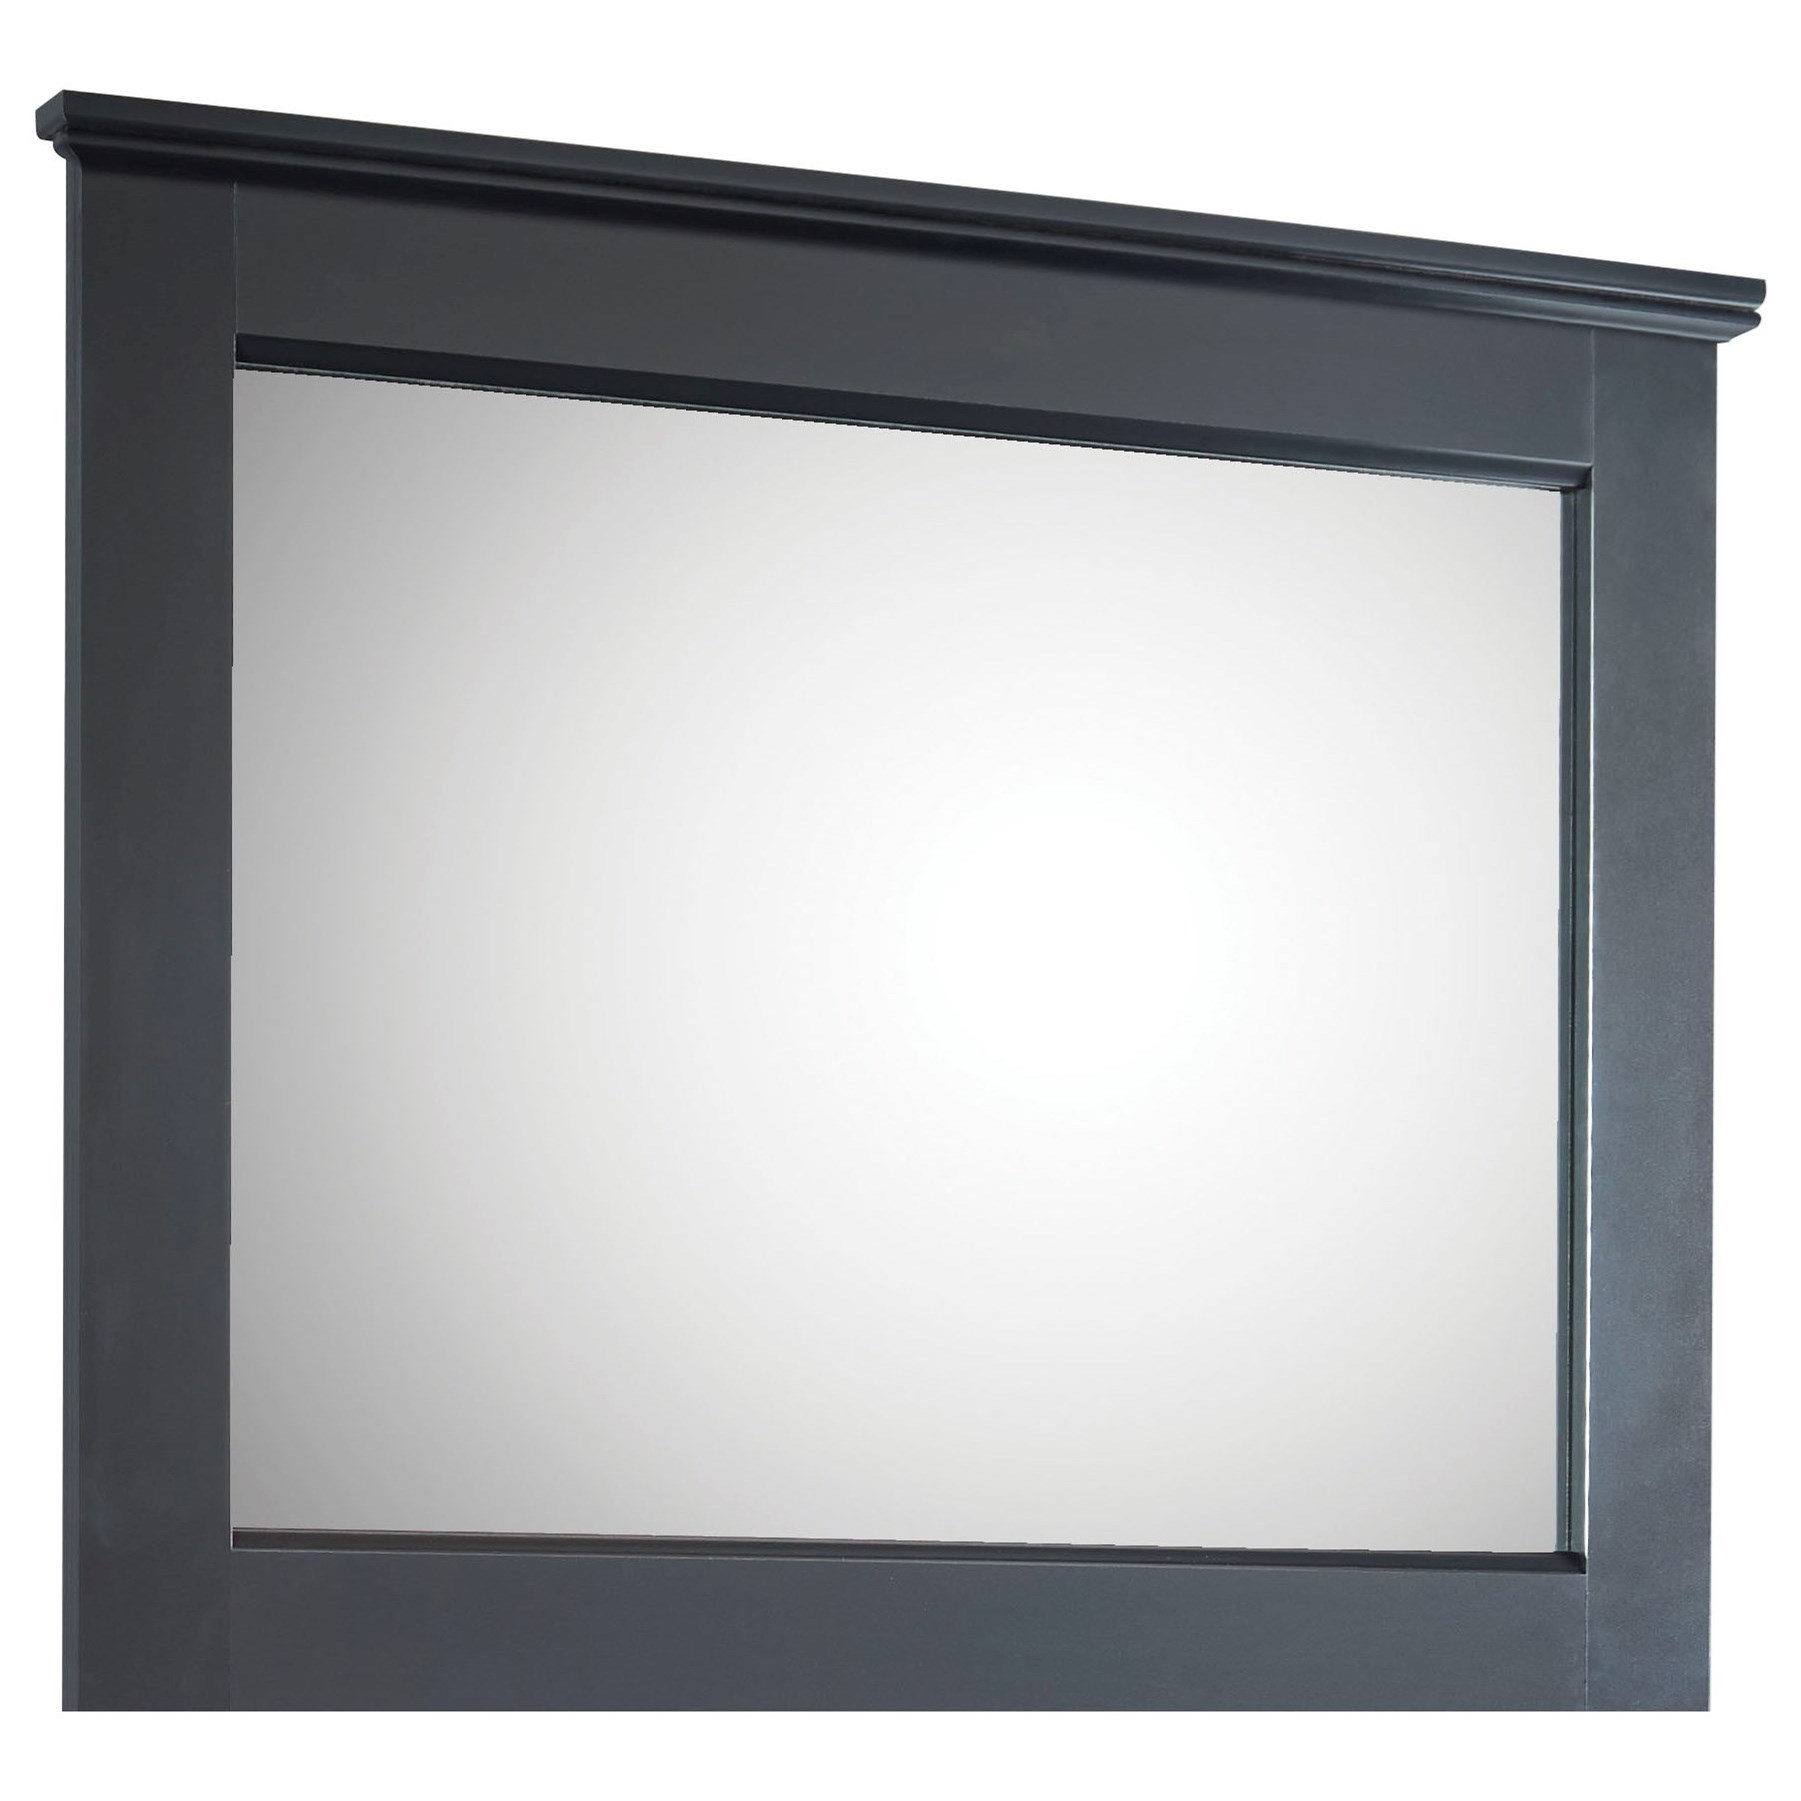 Standard Furniture Modesto Mirror - Item Number: 65068